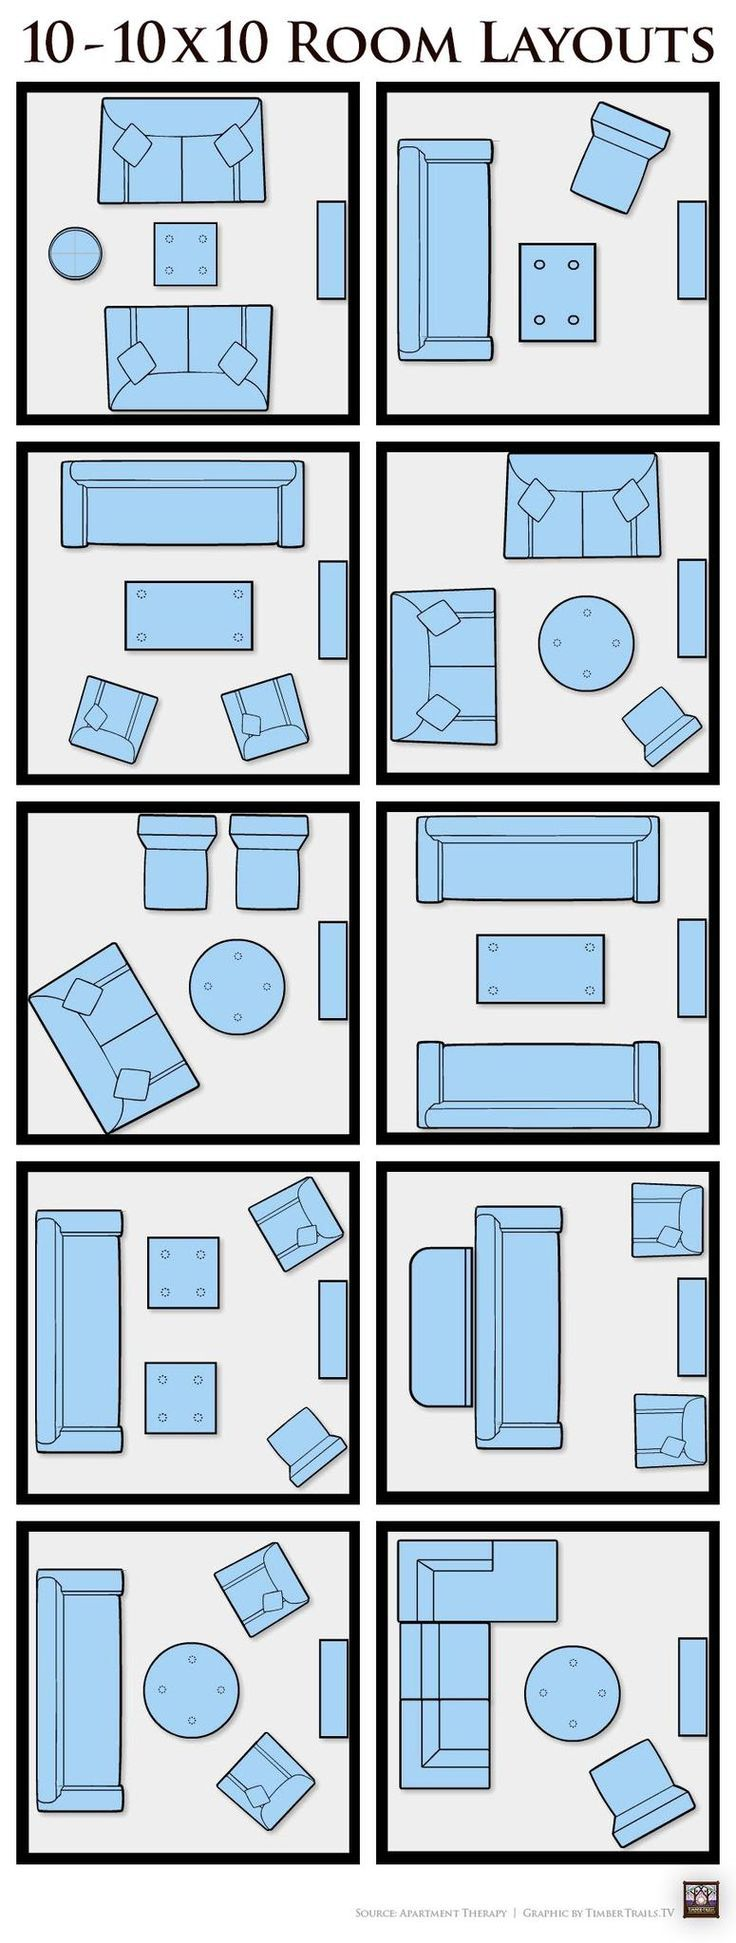 10x10 living room layout - Google Search